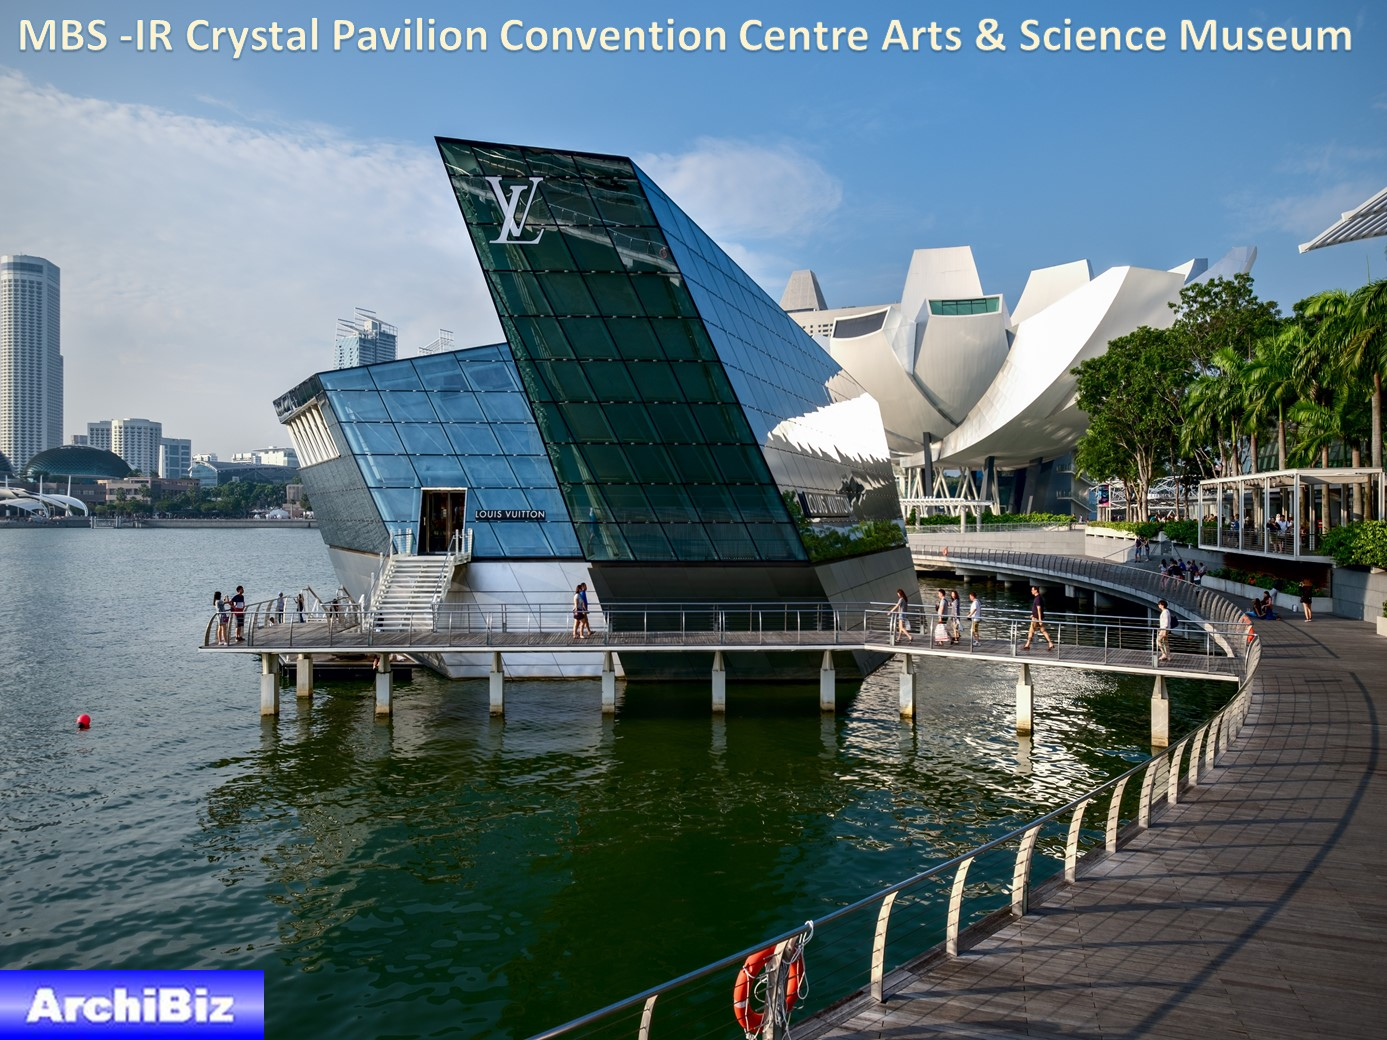 MBS -IR Crystal Pavilion Convention Centre Arts & Science Museum (13)